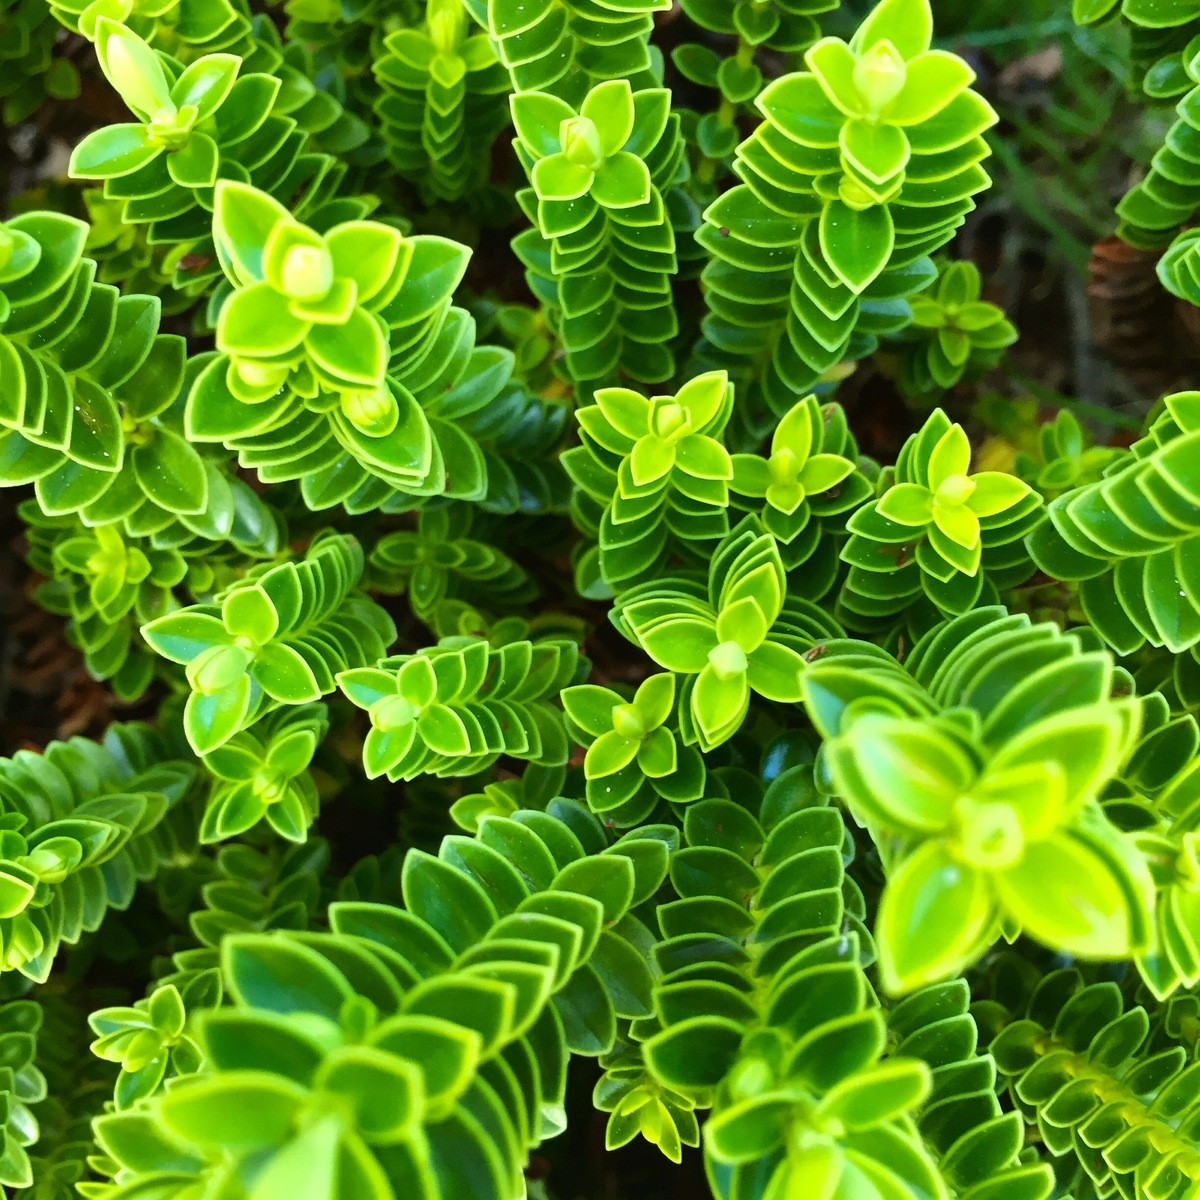 Focus Photography of Green Plant